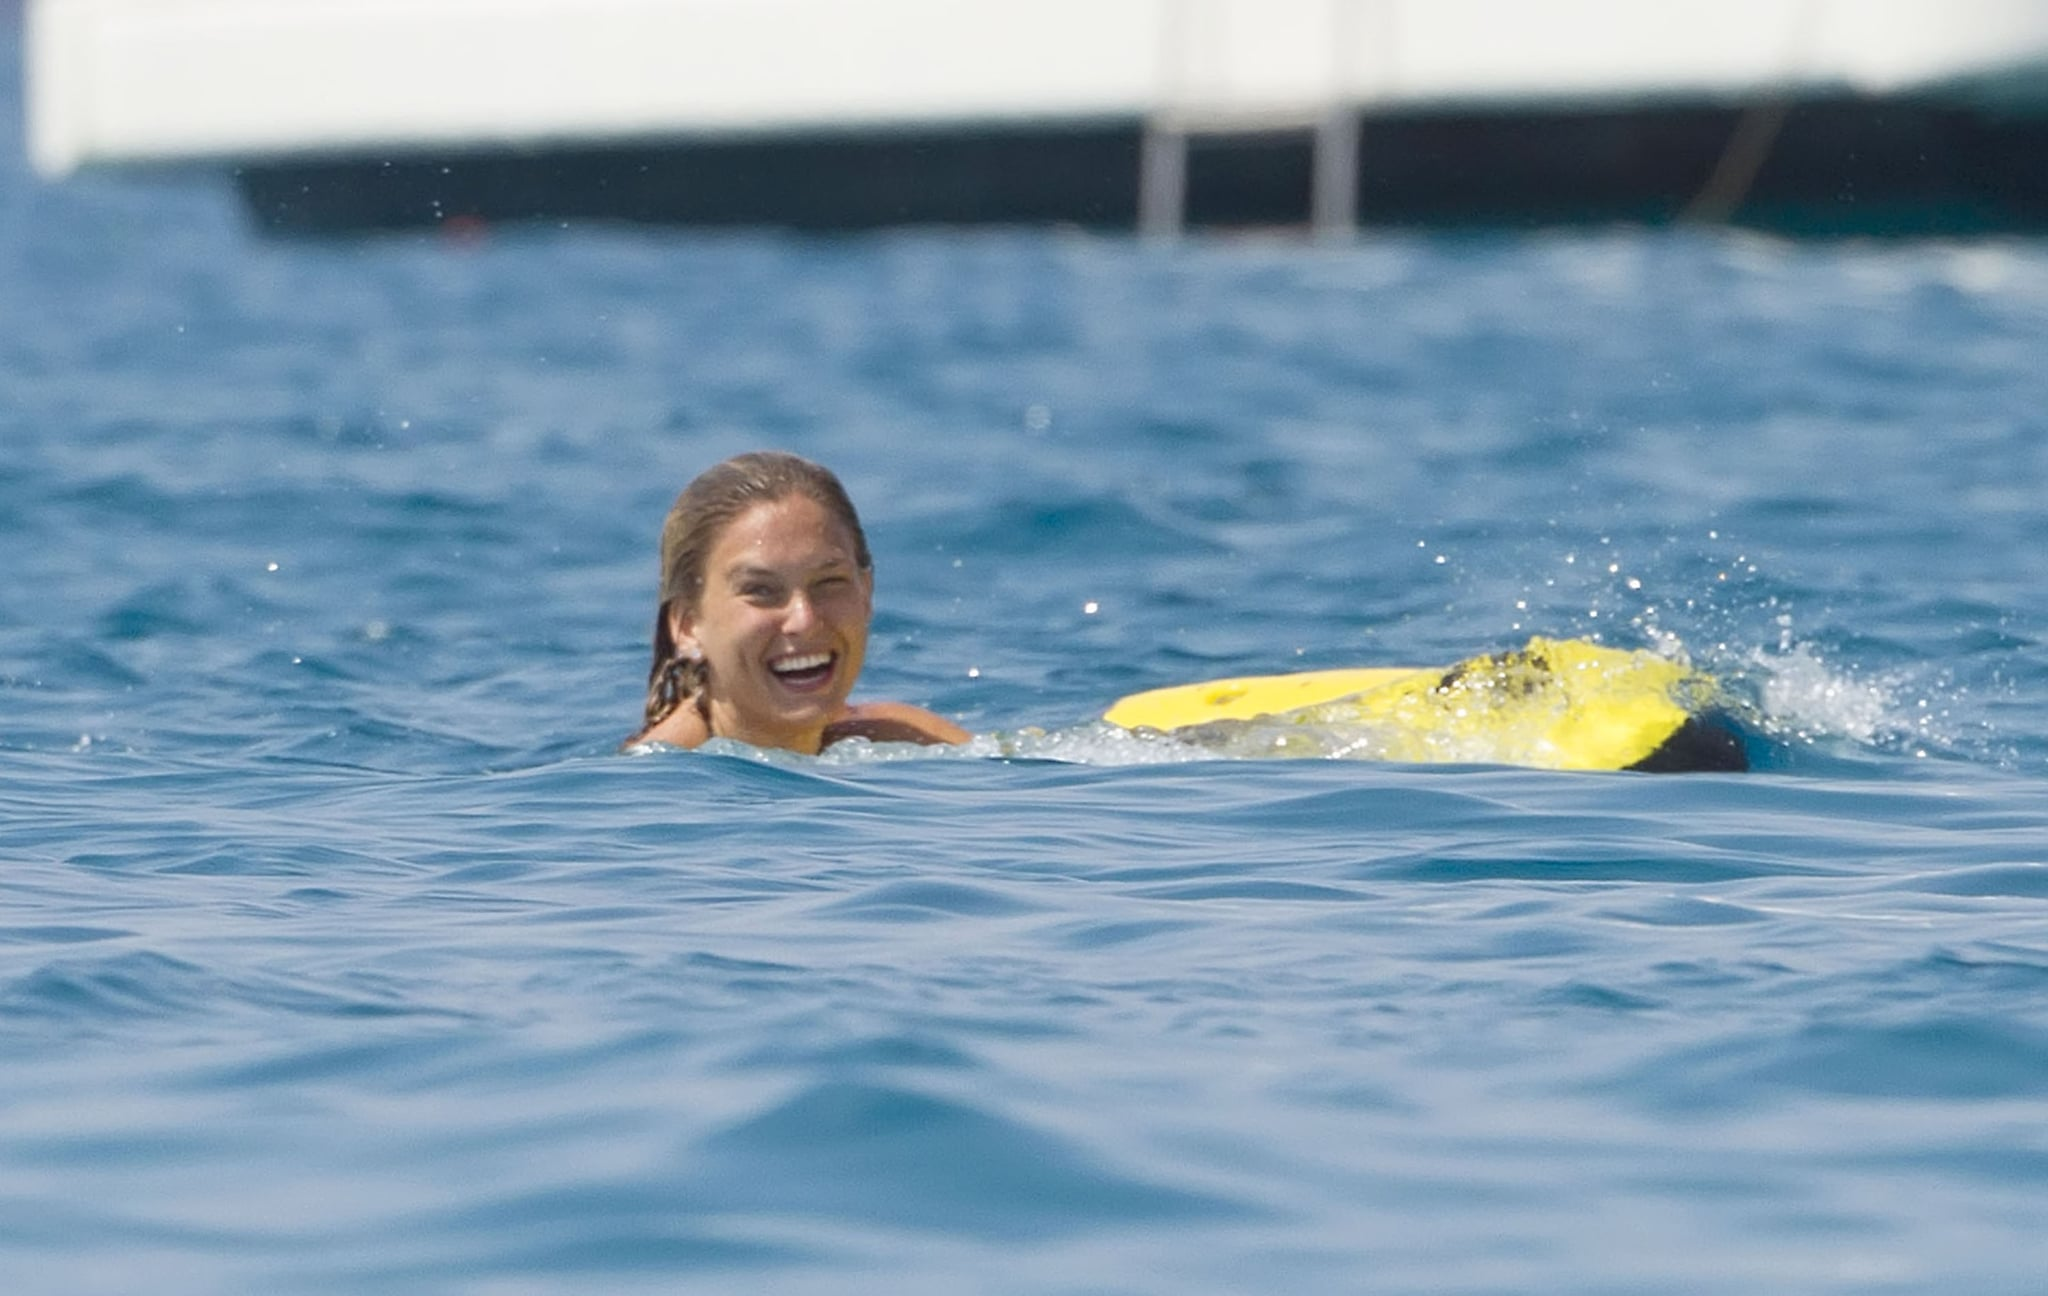 Bar Refaeli flashed a smile in the water.